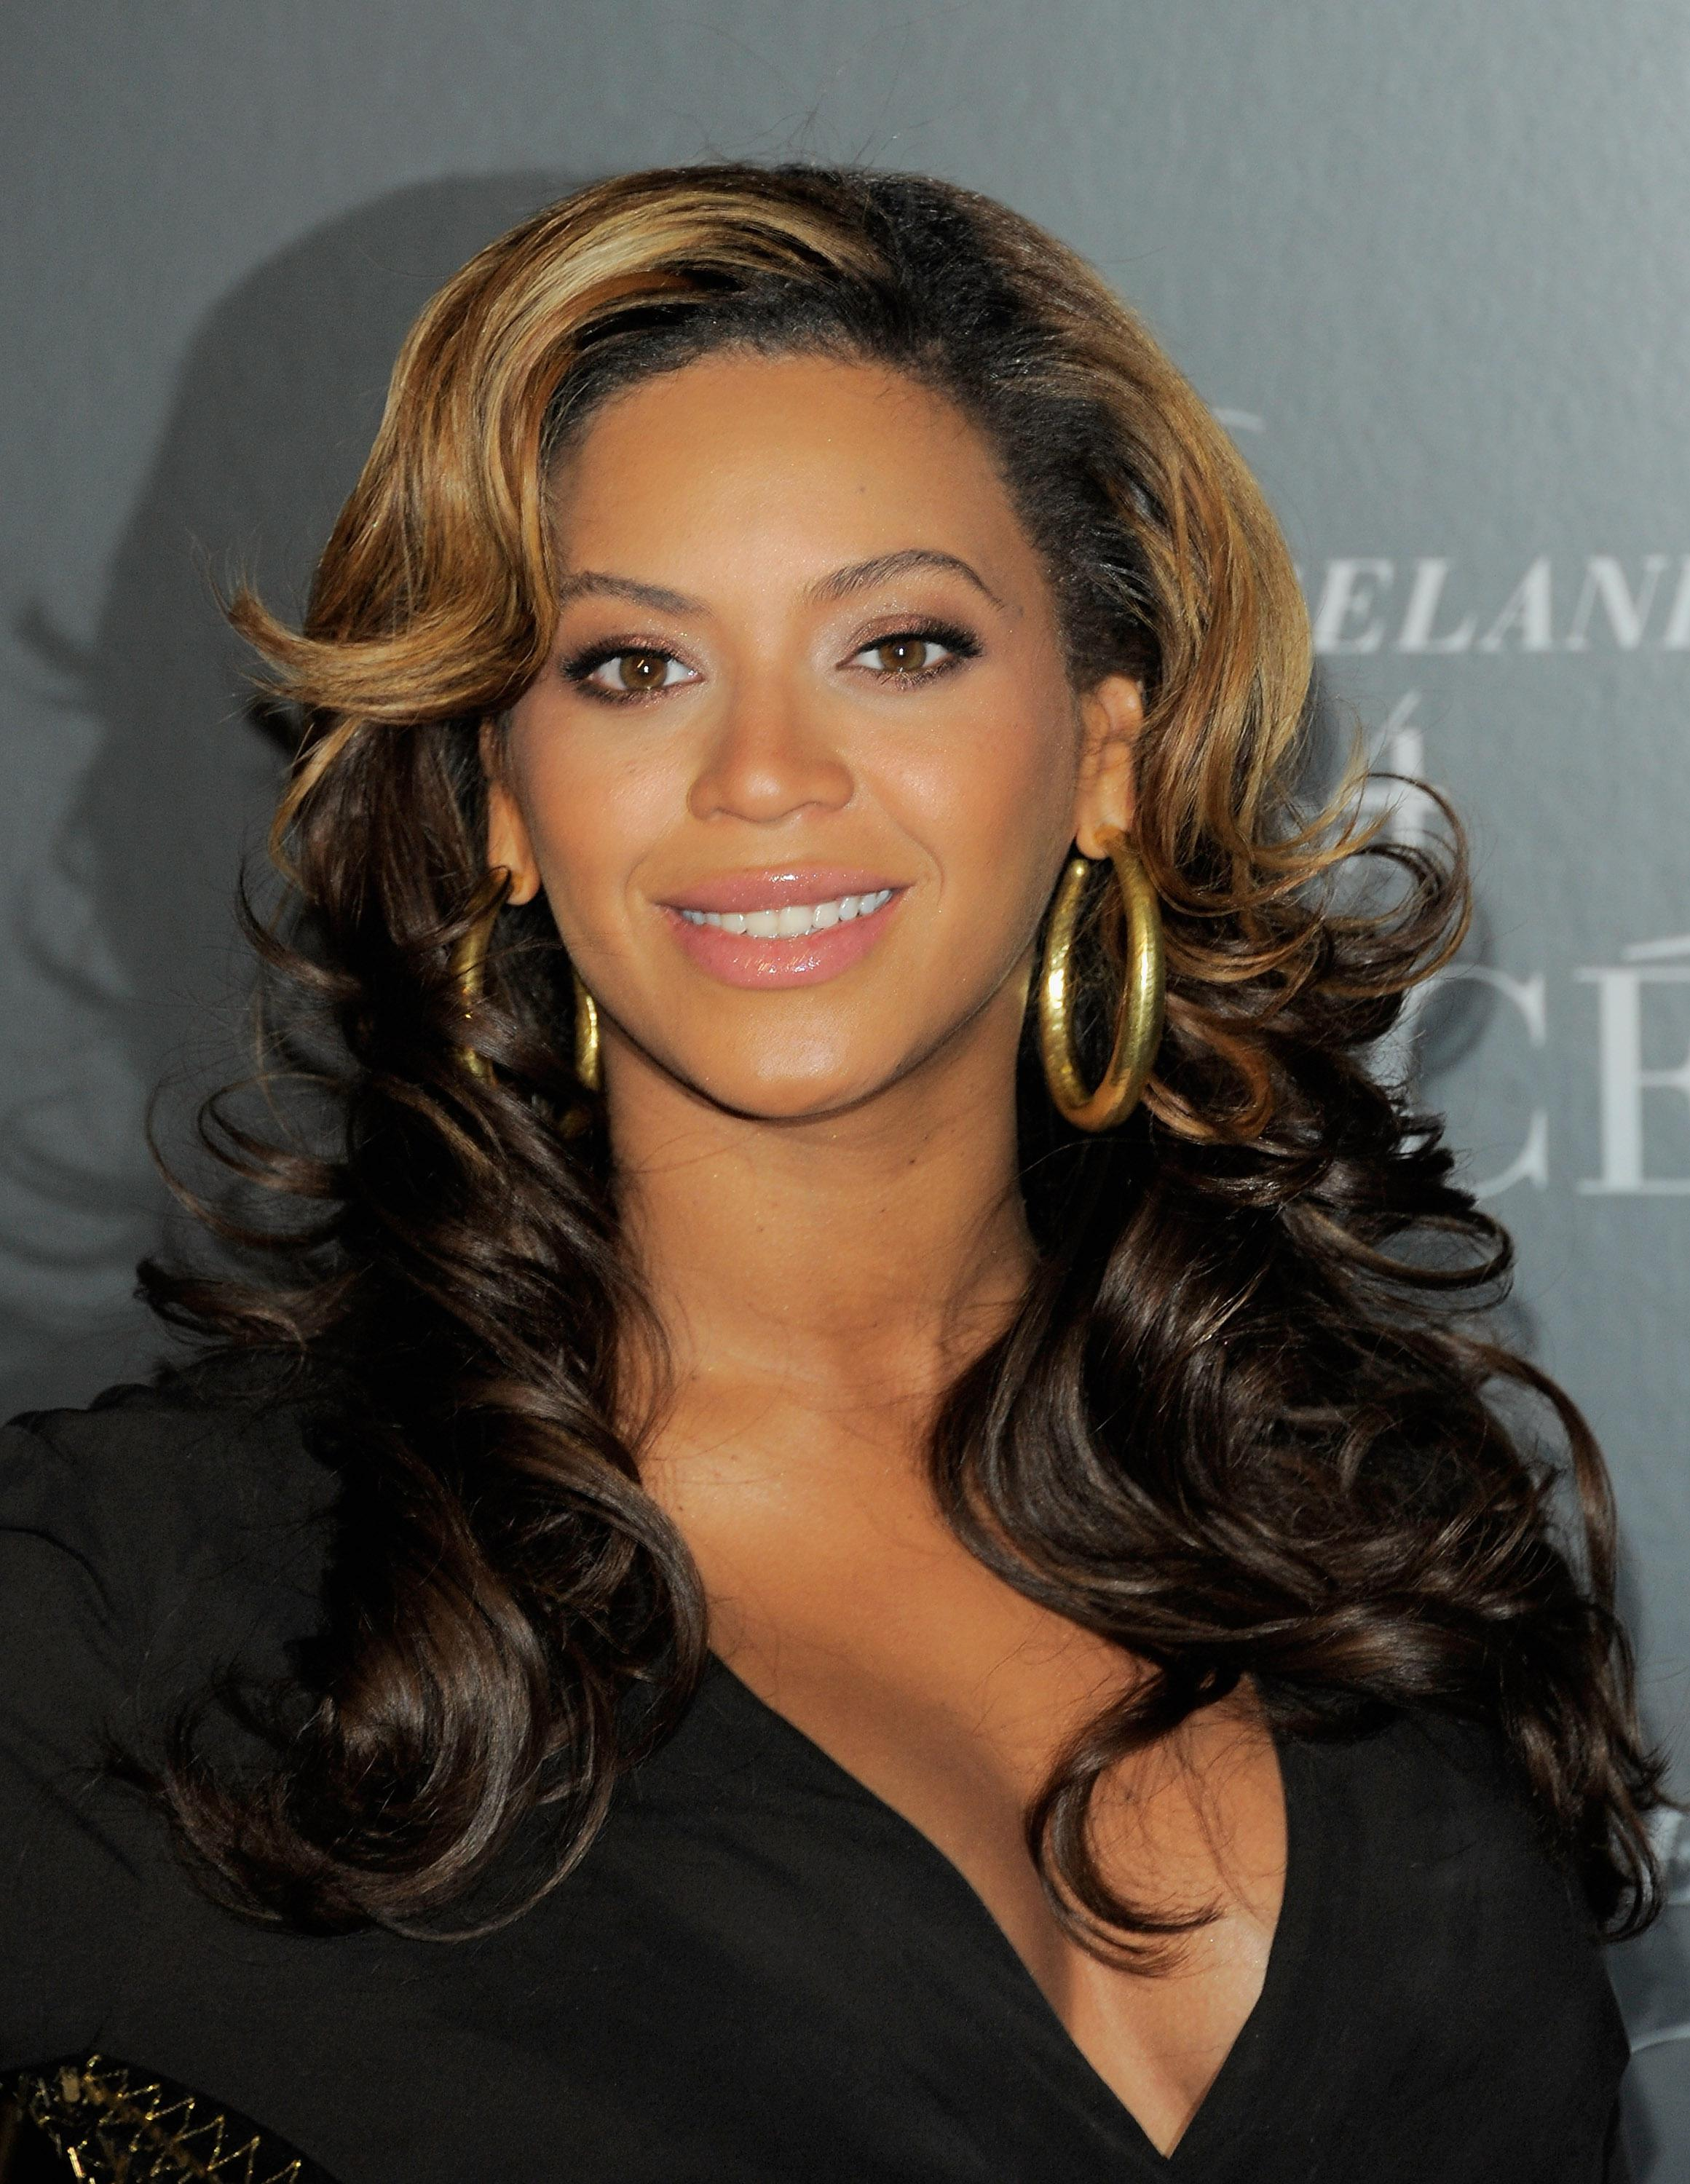 Beyonce Hosts A Screening Of 'Live At Roseland: The Elements Of 4'